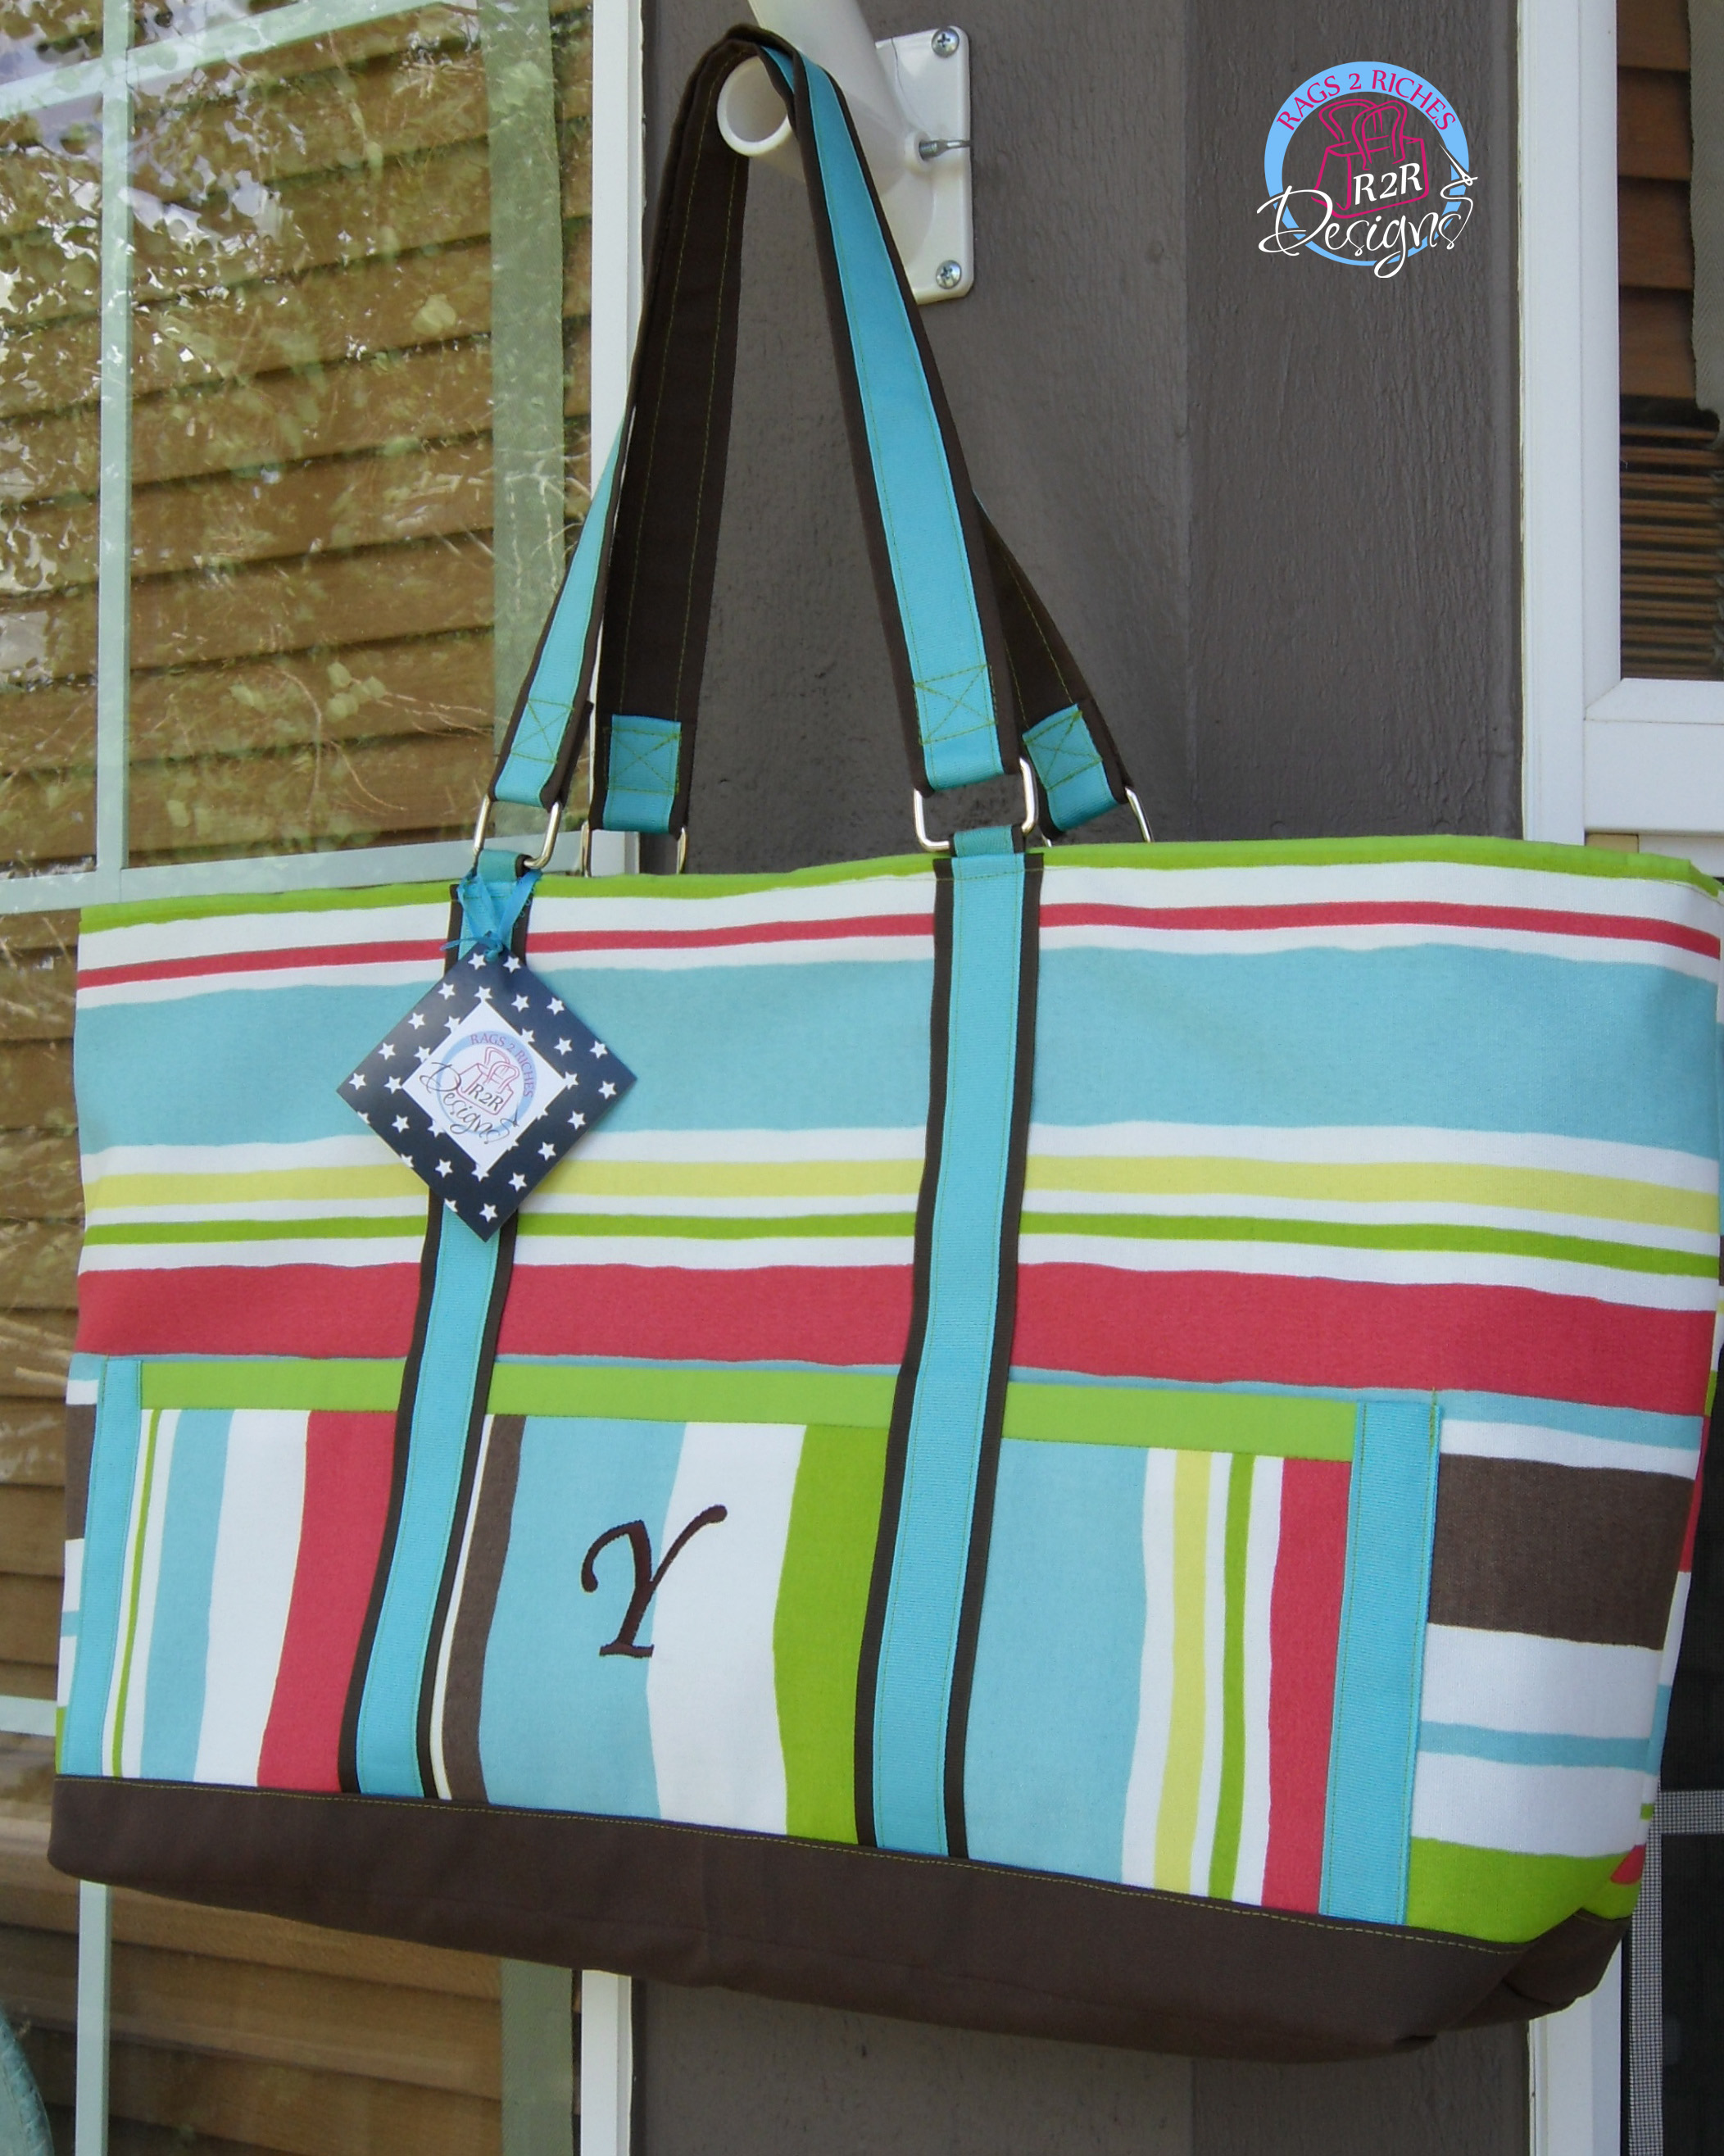 New} Its summer time!!!! Introducing Beach Bags! | Rags 2 Riches